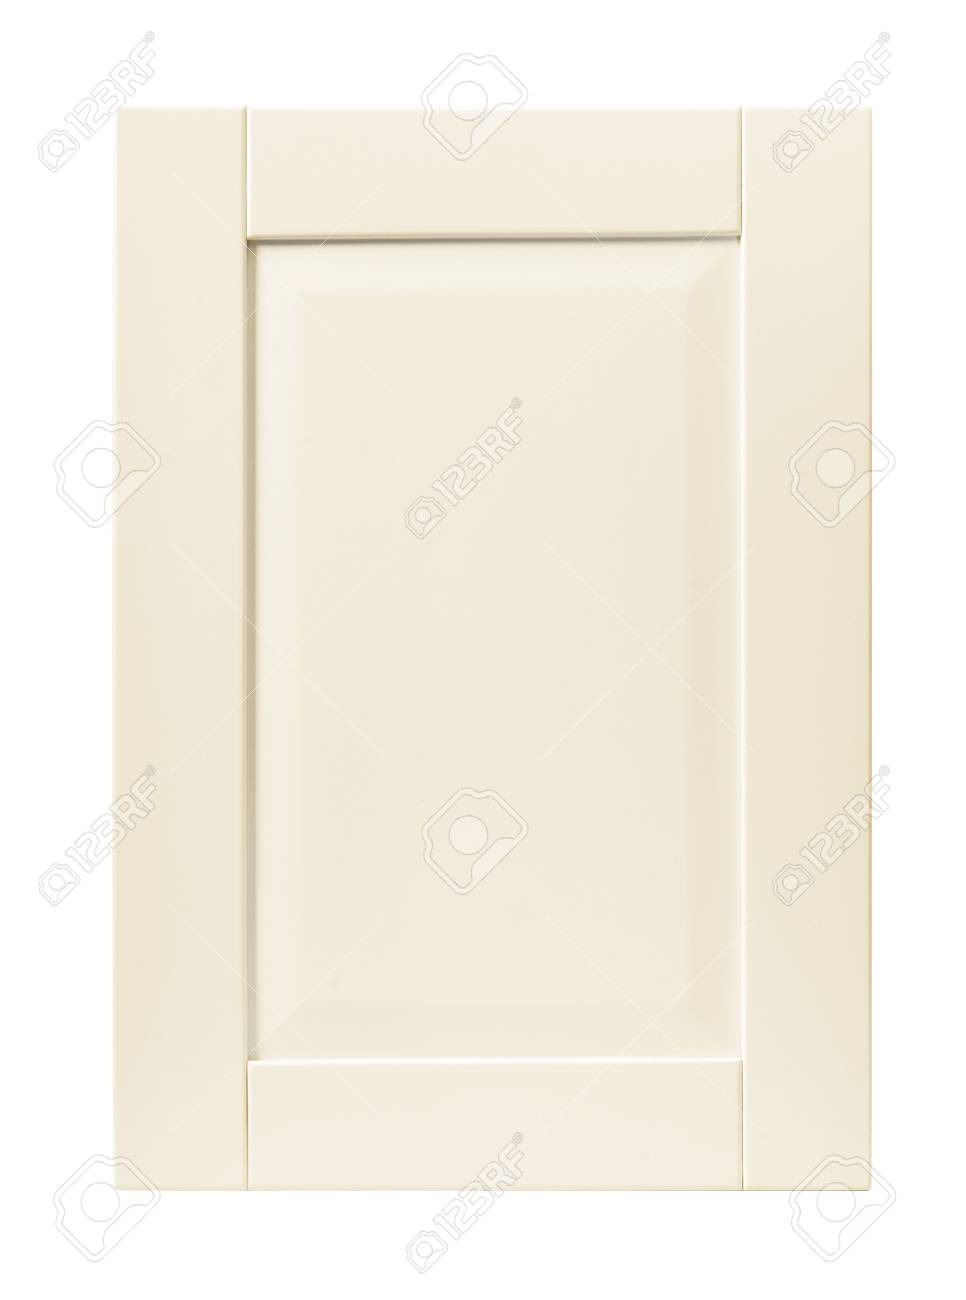 photo front kitchen wooden frame cabinet door isolated on white